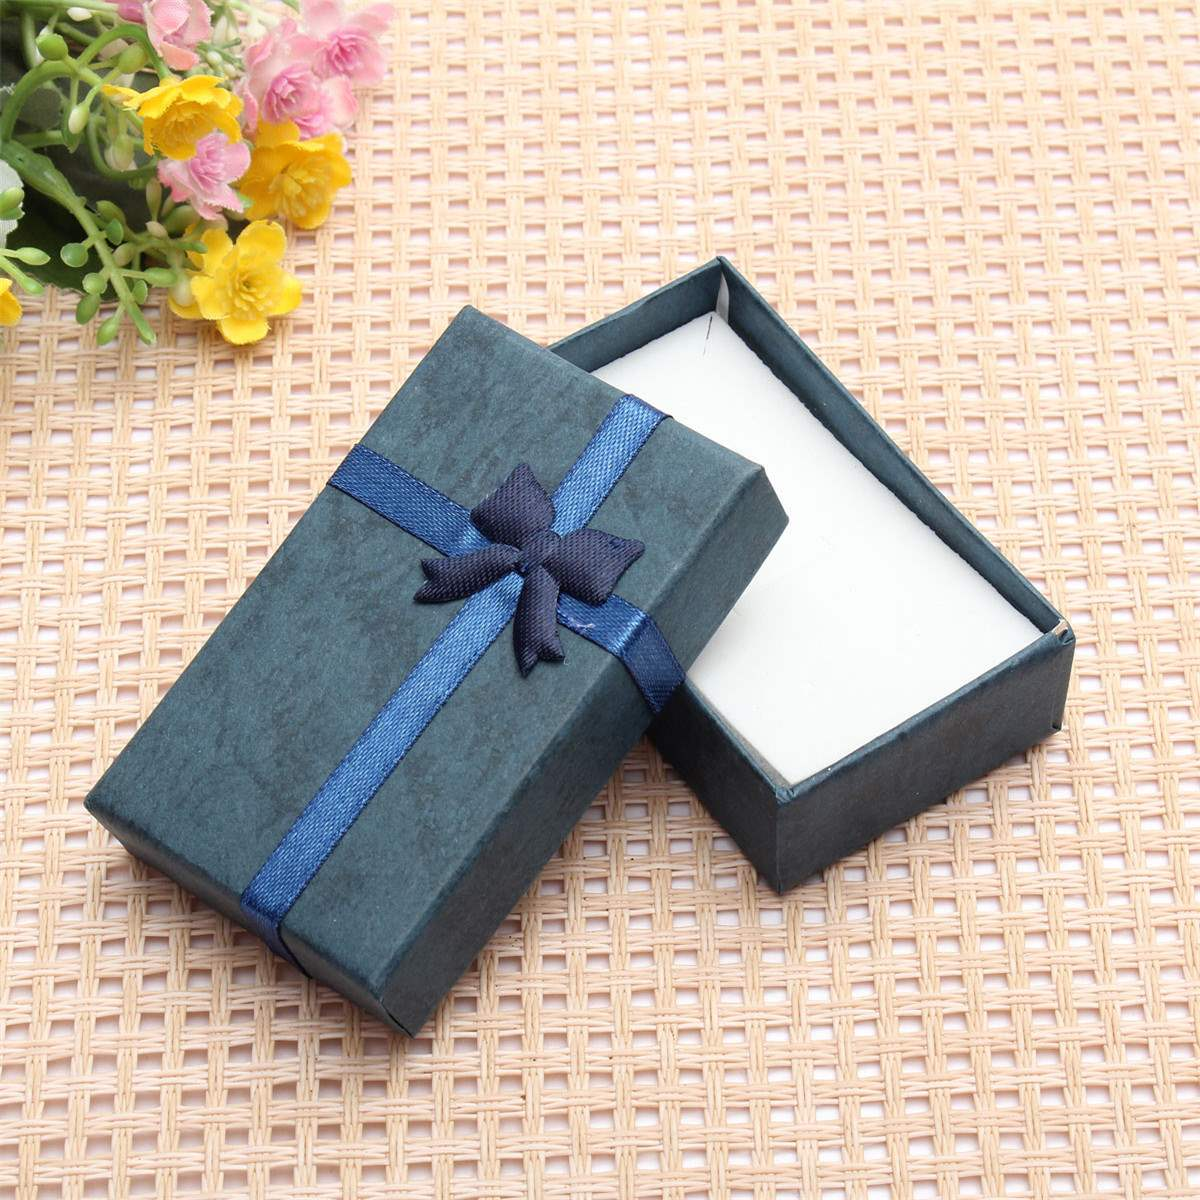 New Rectangle Ribbon Bowknot Gift Box Handmade Paper Jewelry Boxes Wholesale Large Big Case For Necklace Chain Bracelet(China (Mainland))